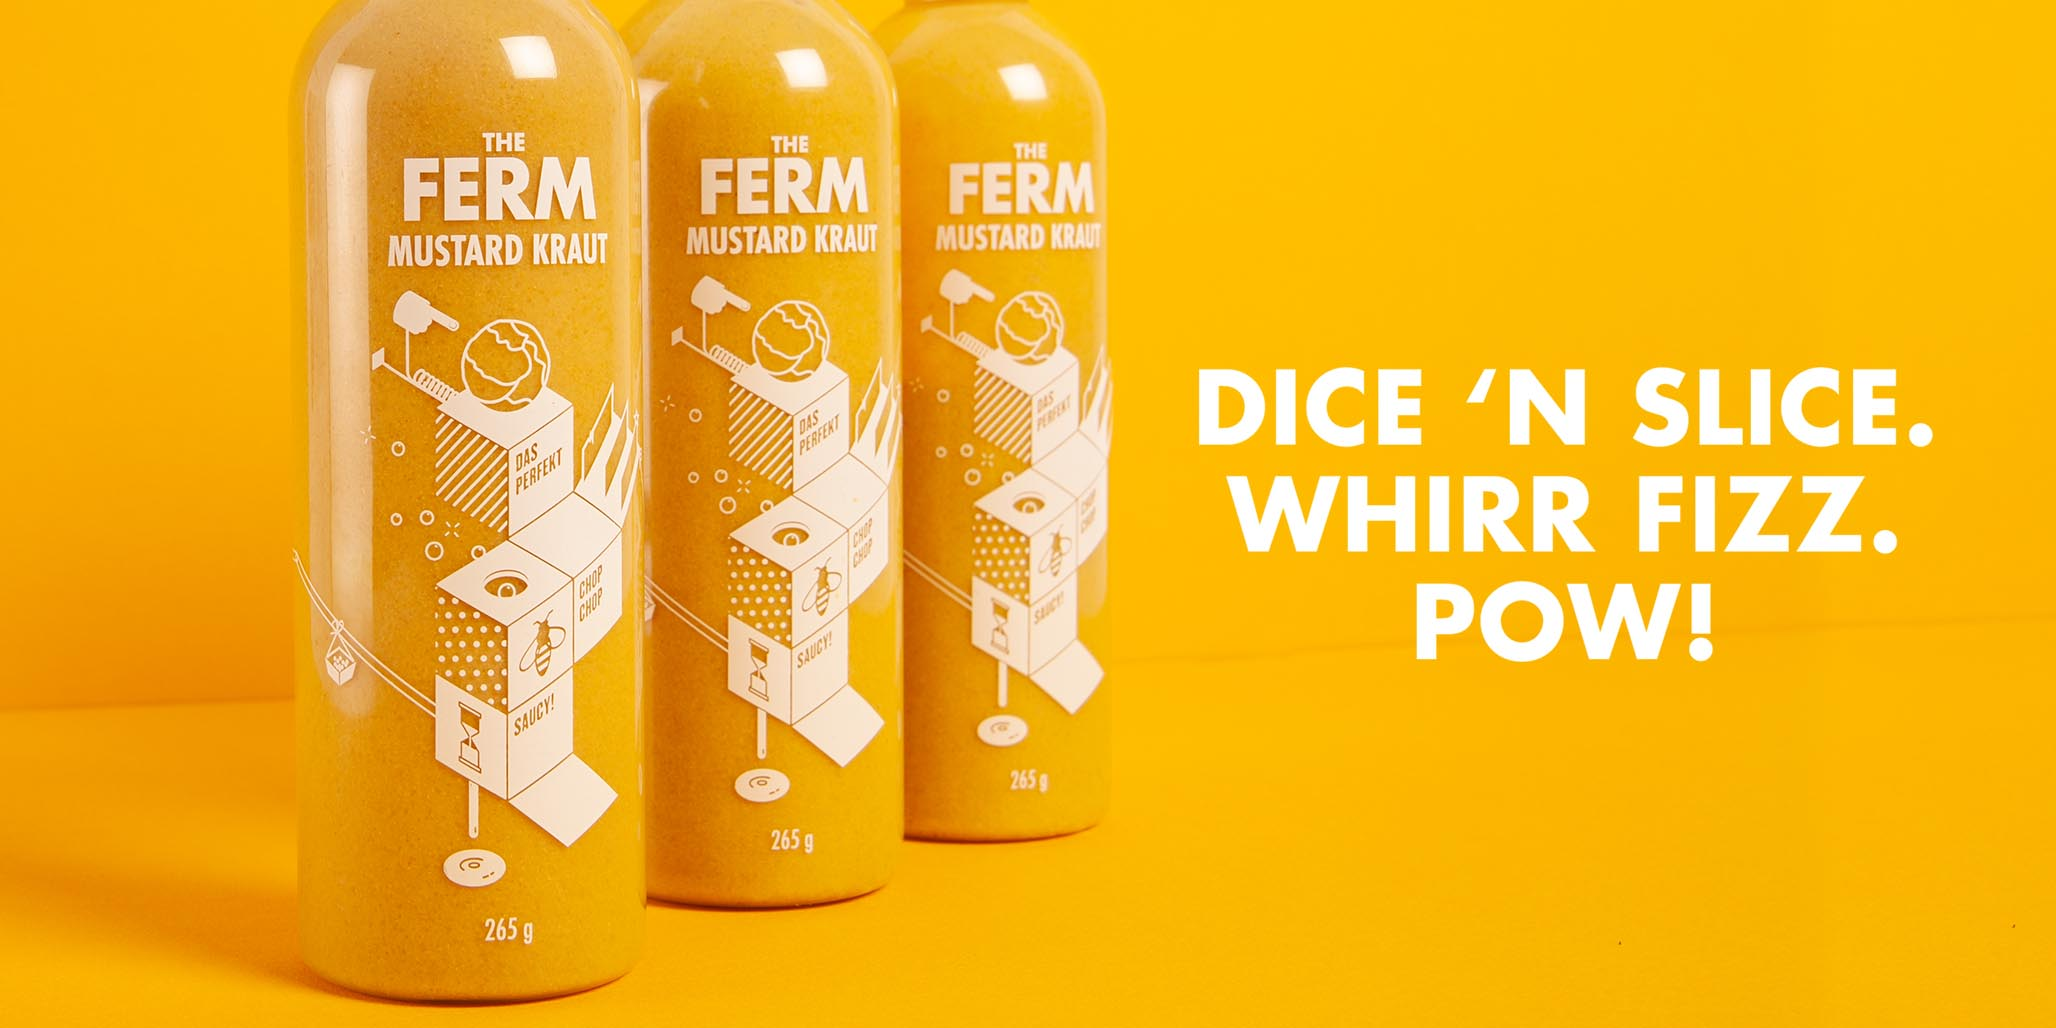 Brand Positioning, Brand Naming, Branding & Packaging Design project for FMCG food product manufacturer The Ferm, Sydney, Australia, image H